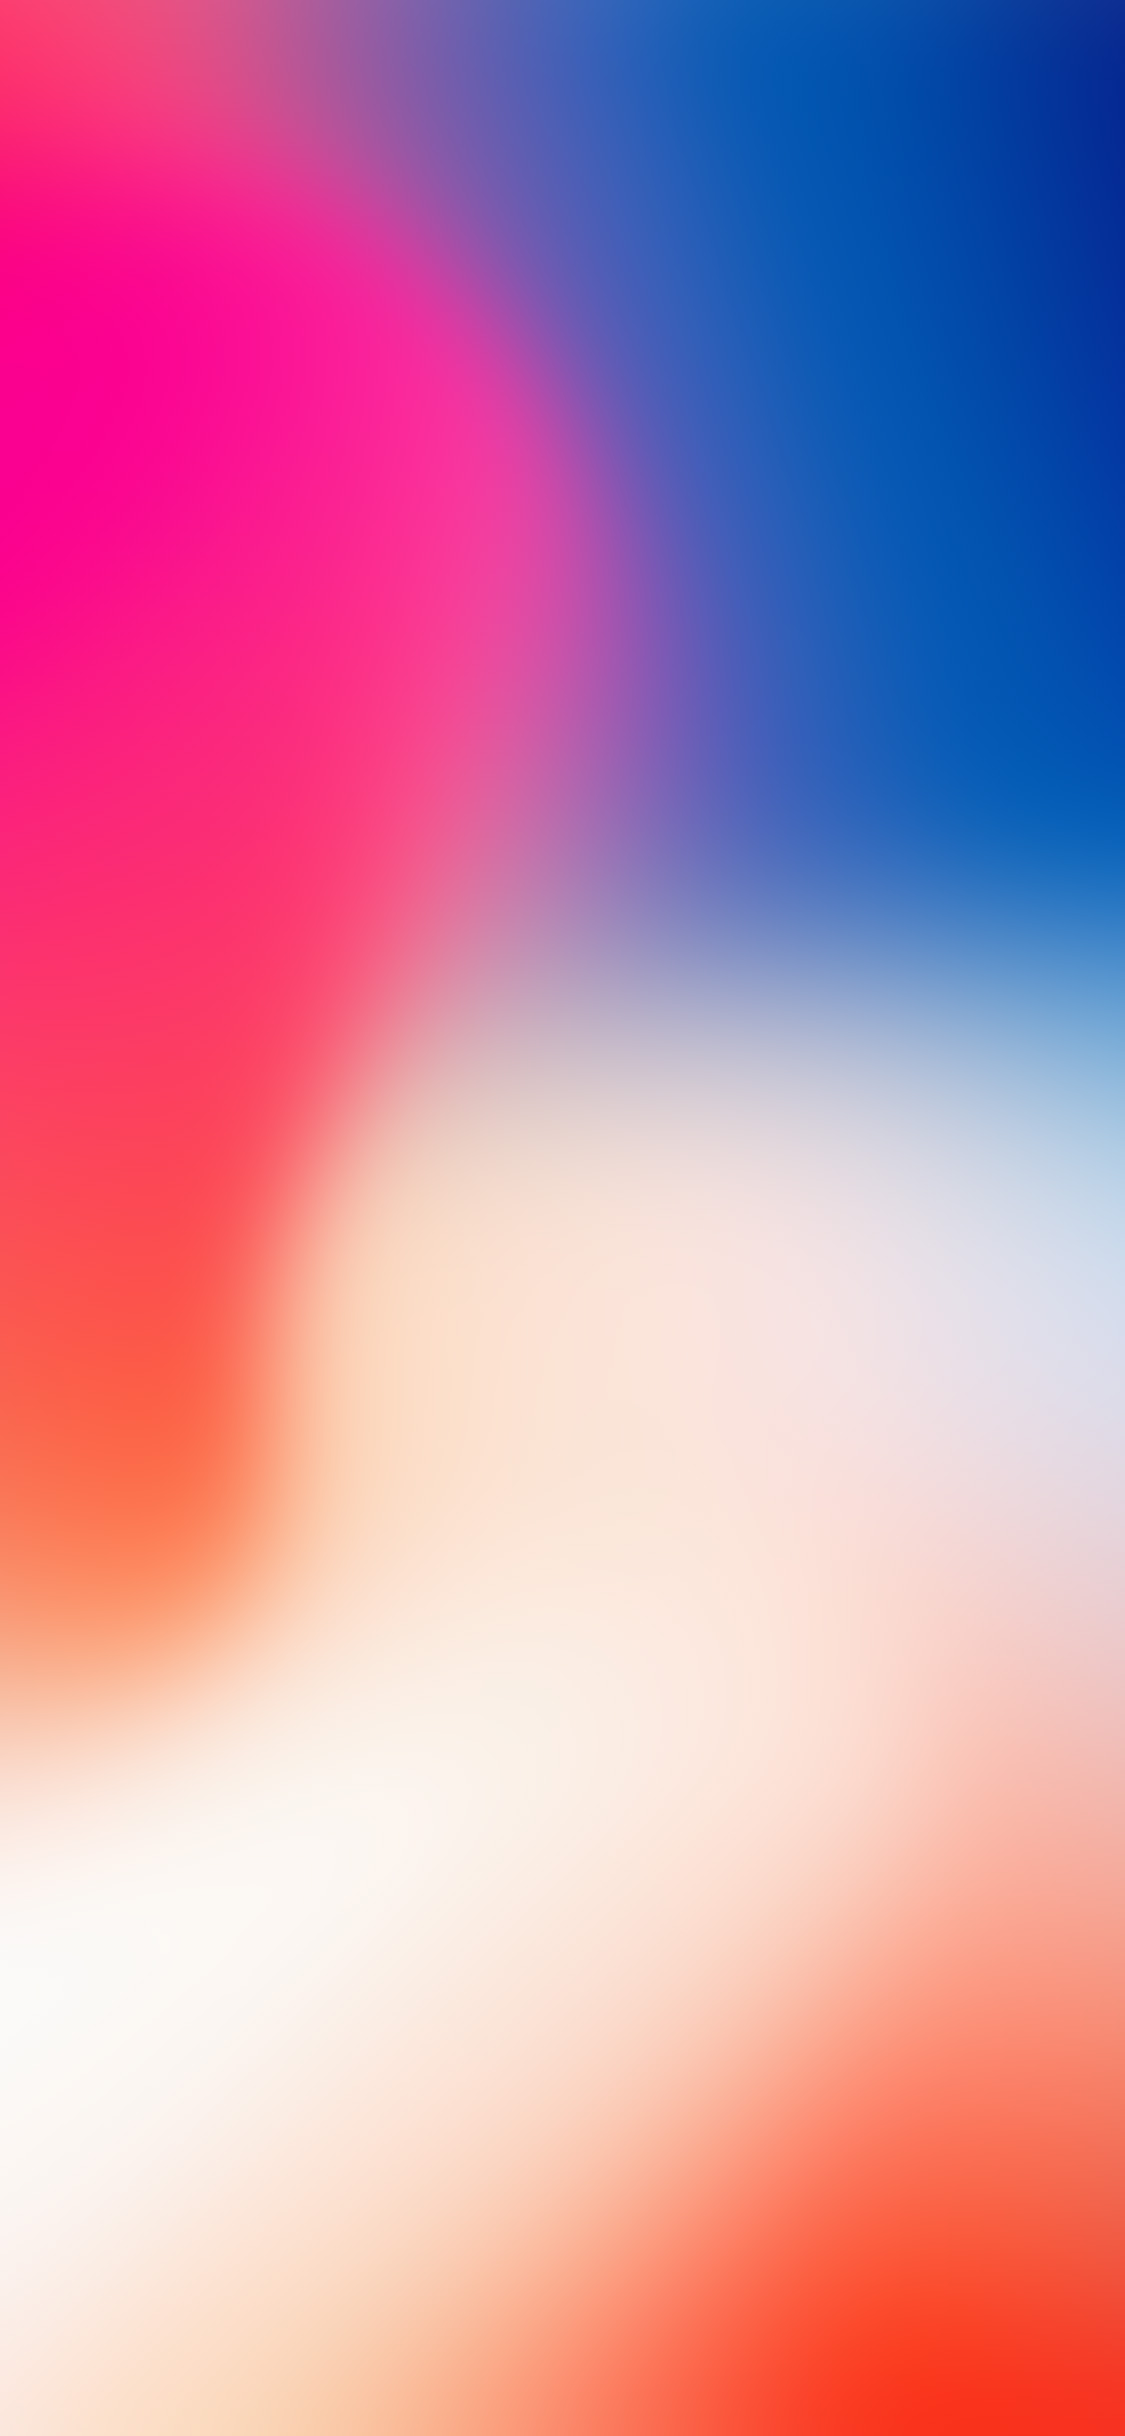 iPhoneXpapers.com-Apple-iPhone-wallpaper-sl90-iphonex-apple-color-blur-gradation